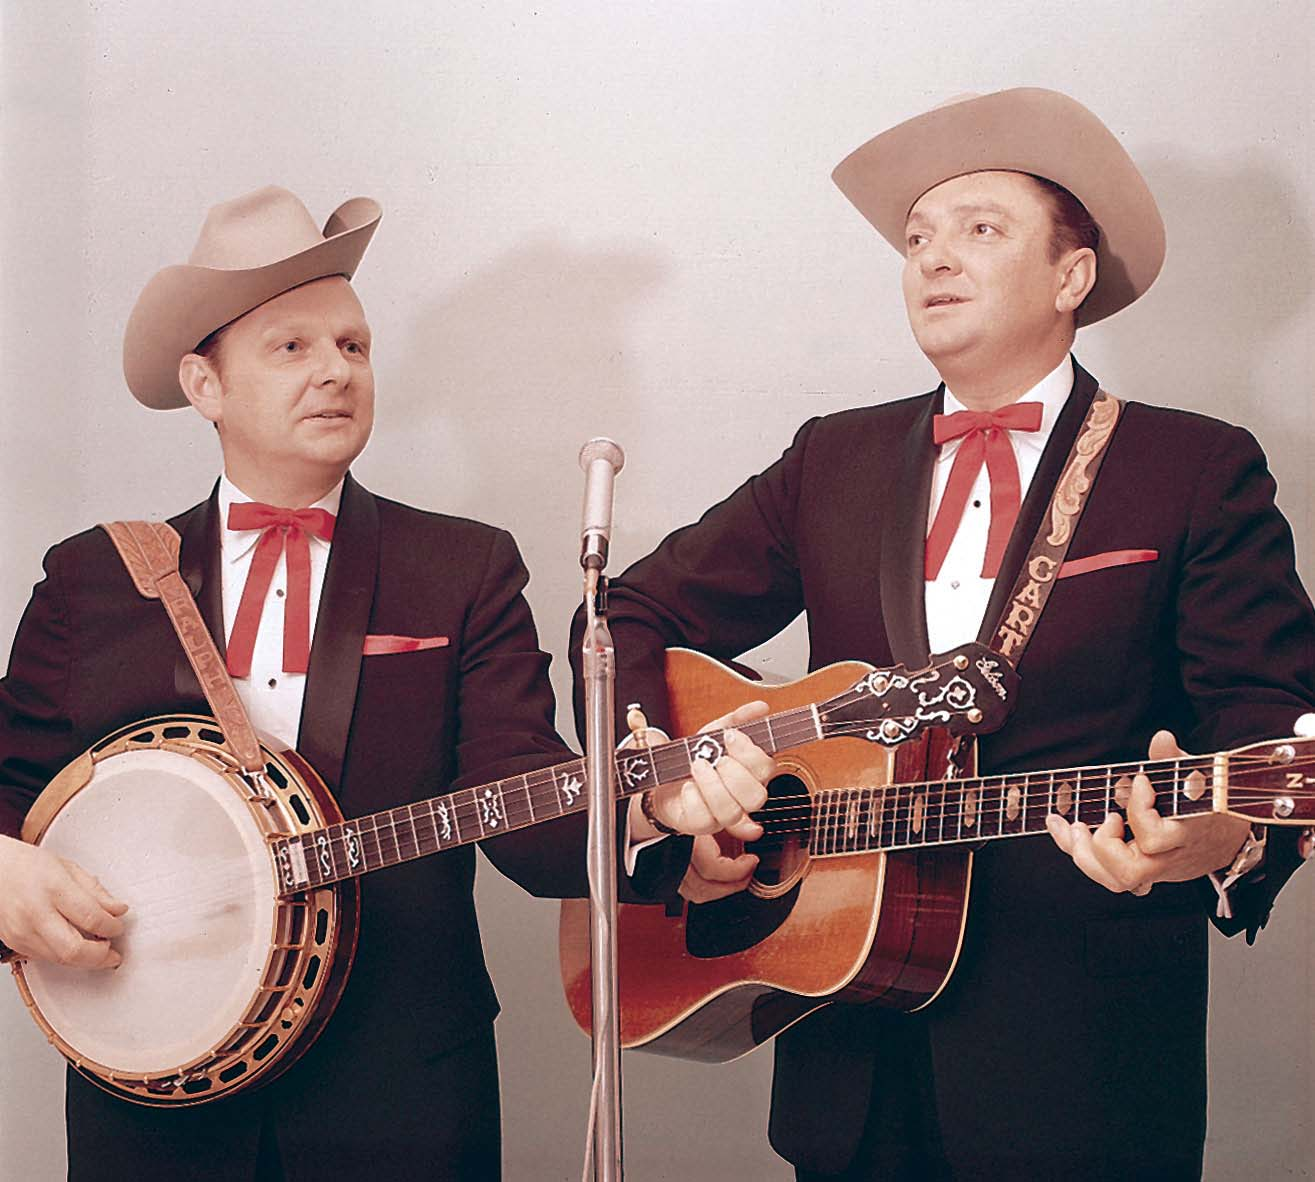 1000+ Images About Country & Bluegrass Music On Pinterest